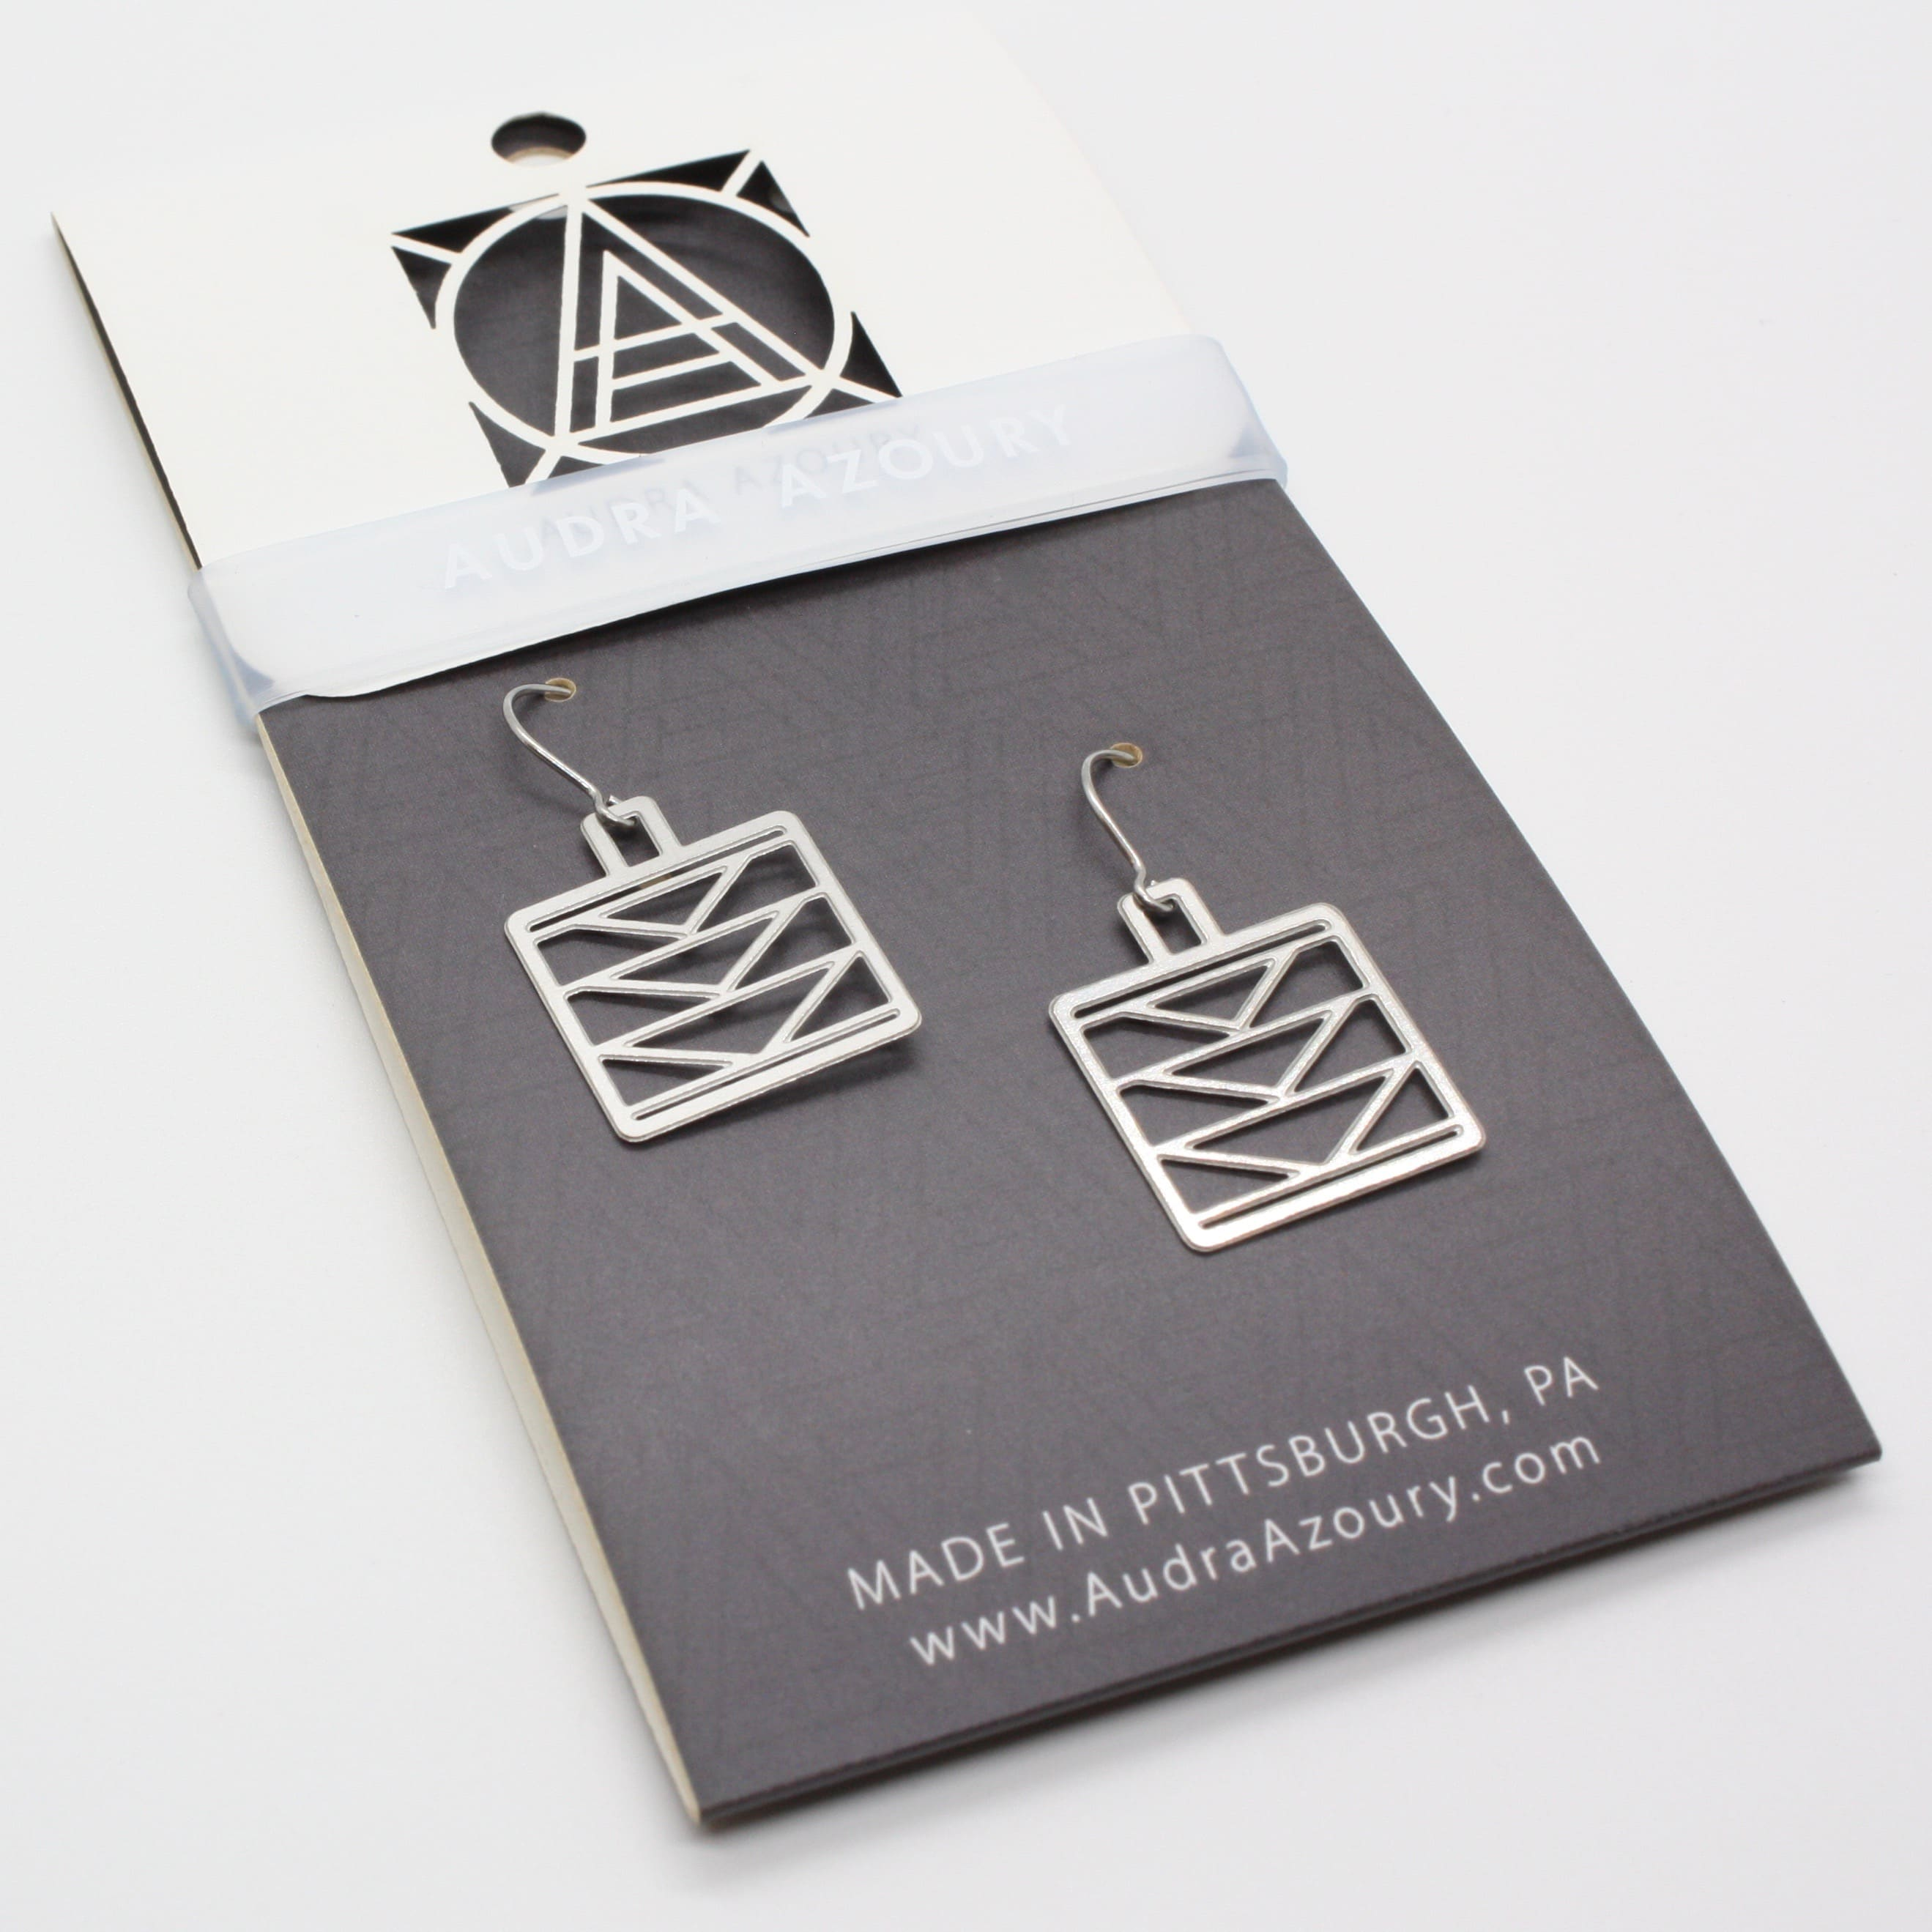 Square Tri-Tower Earrings